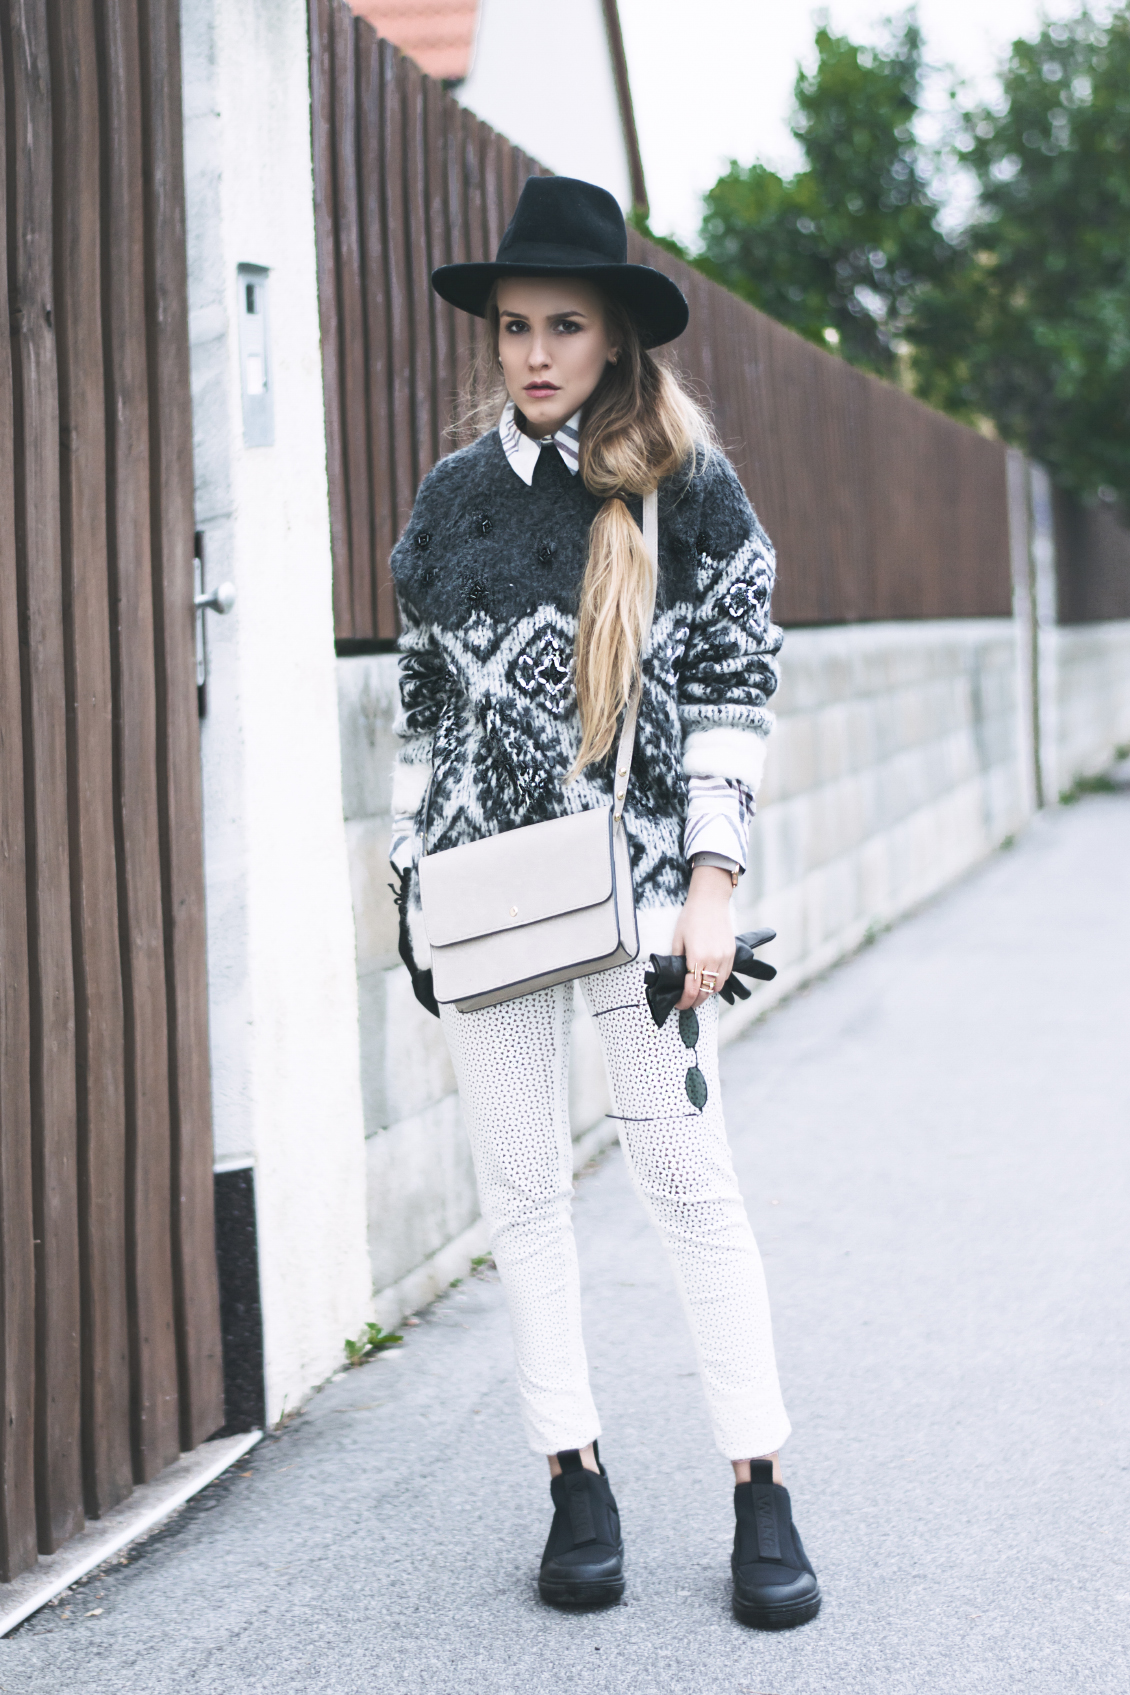 Hemd unter Pullover - Herbst Outfit inspiration